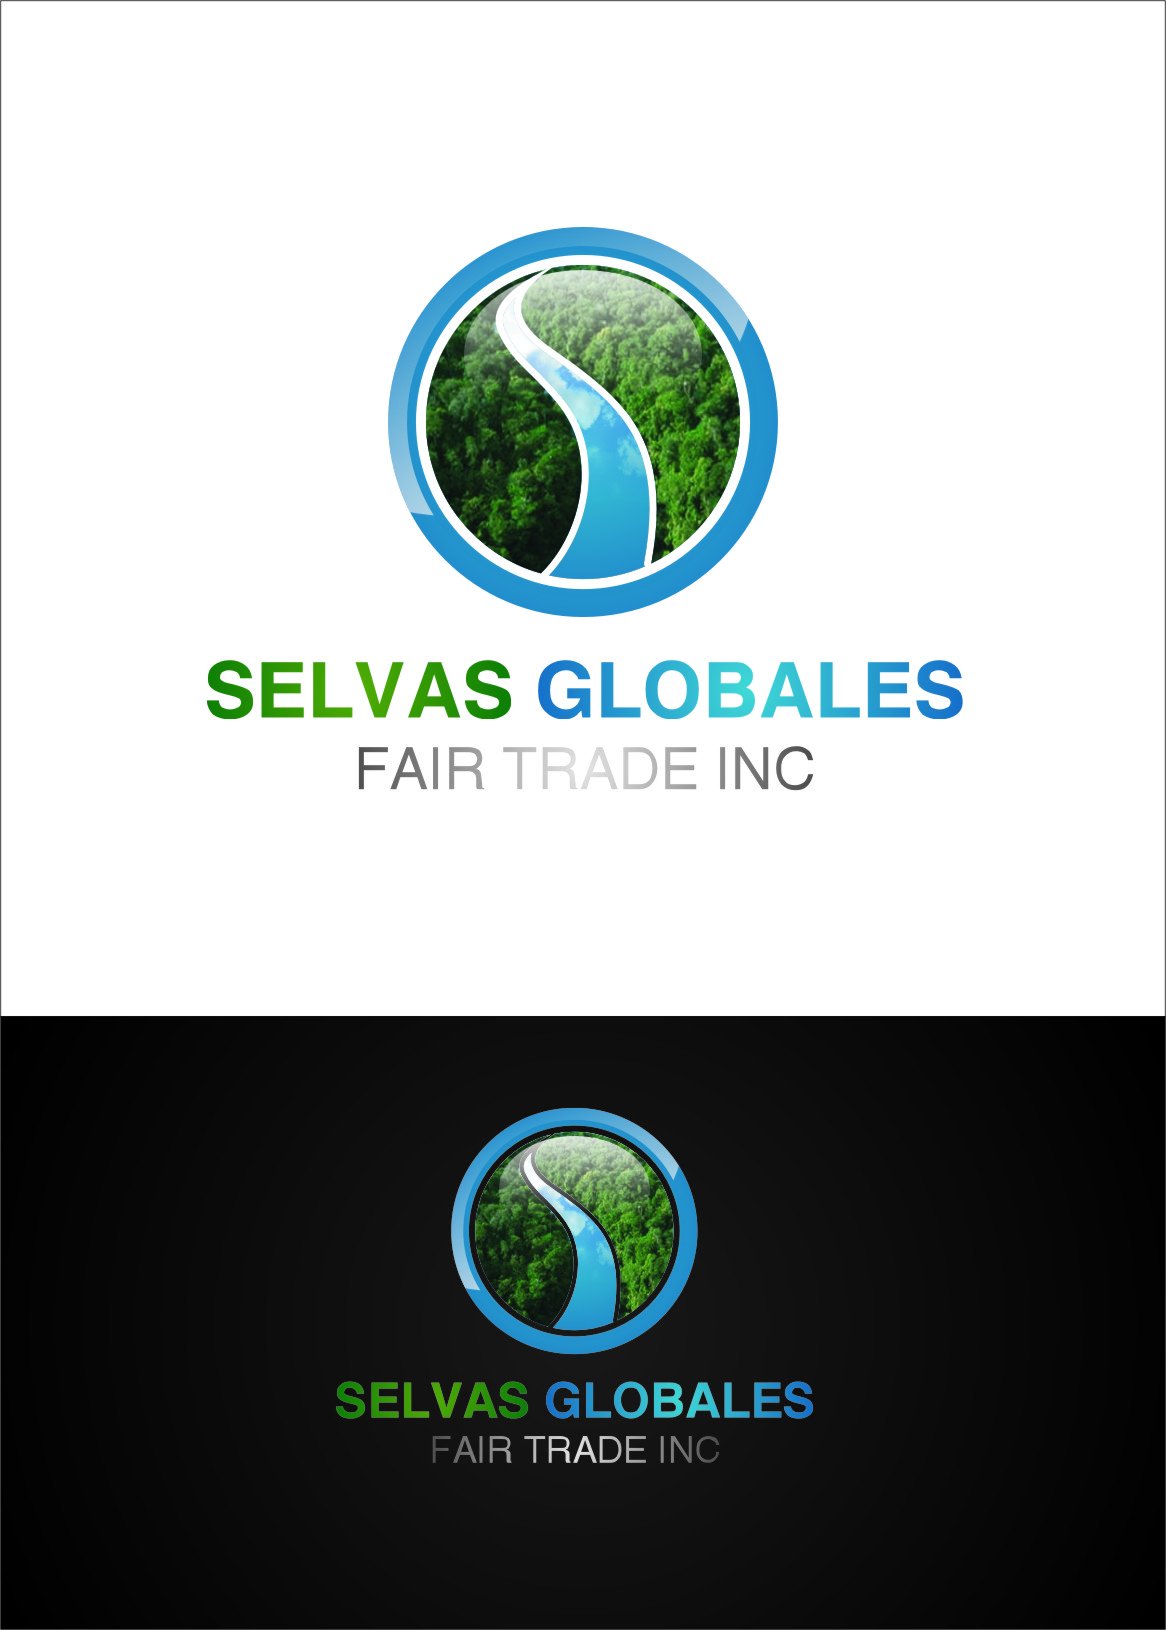 Logo Design by Ngepet_art - Entry No. 121 in the Logo Design Contest Captivating Logo Design for Selvas Globales Fair Trade Inc..